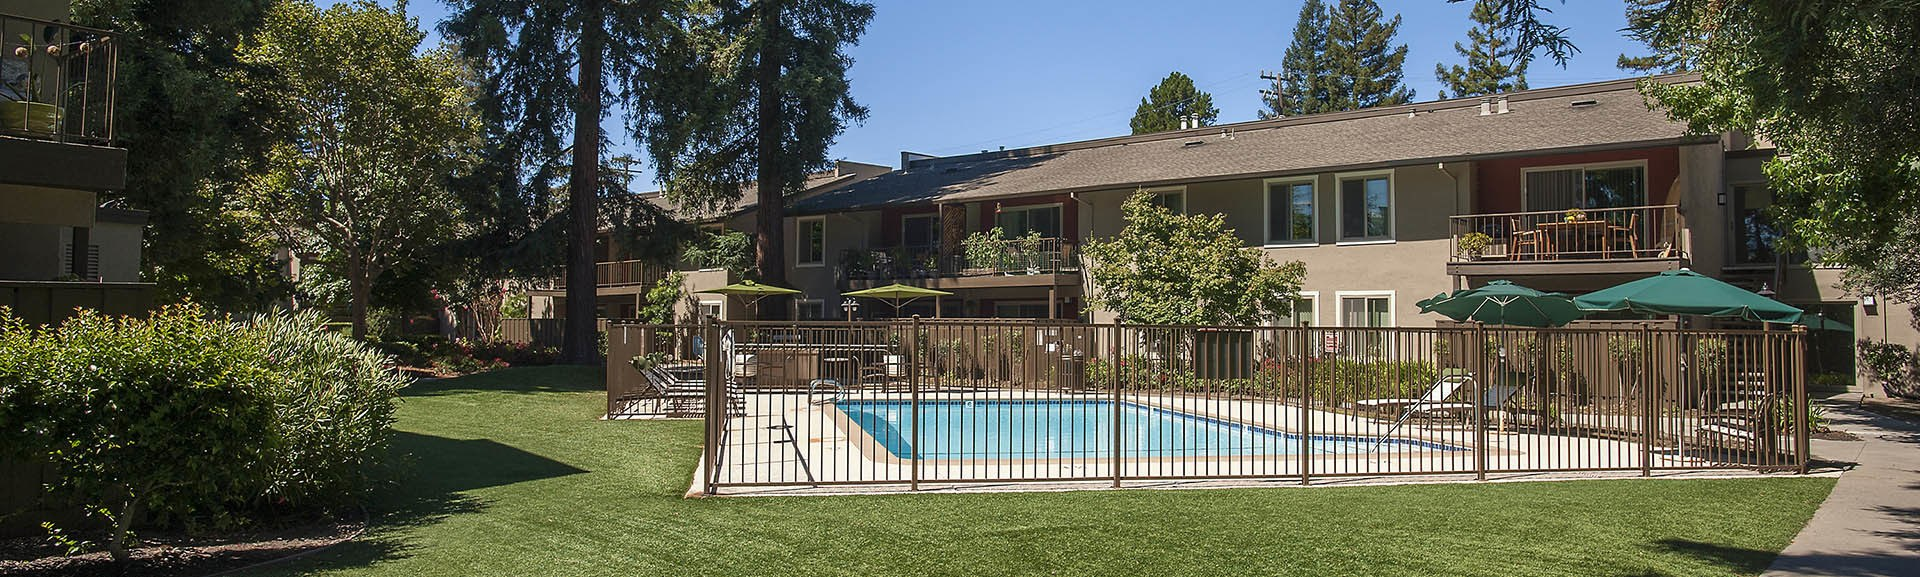 Learn about our neighborhood at Flora Condominium Rentals in Walnut Creek, CA on our website